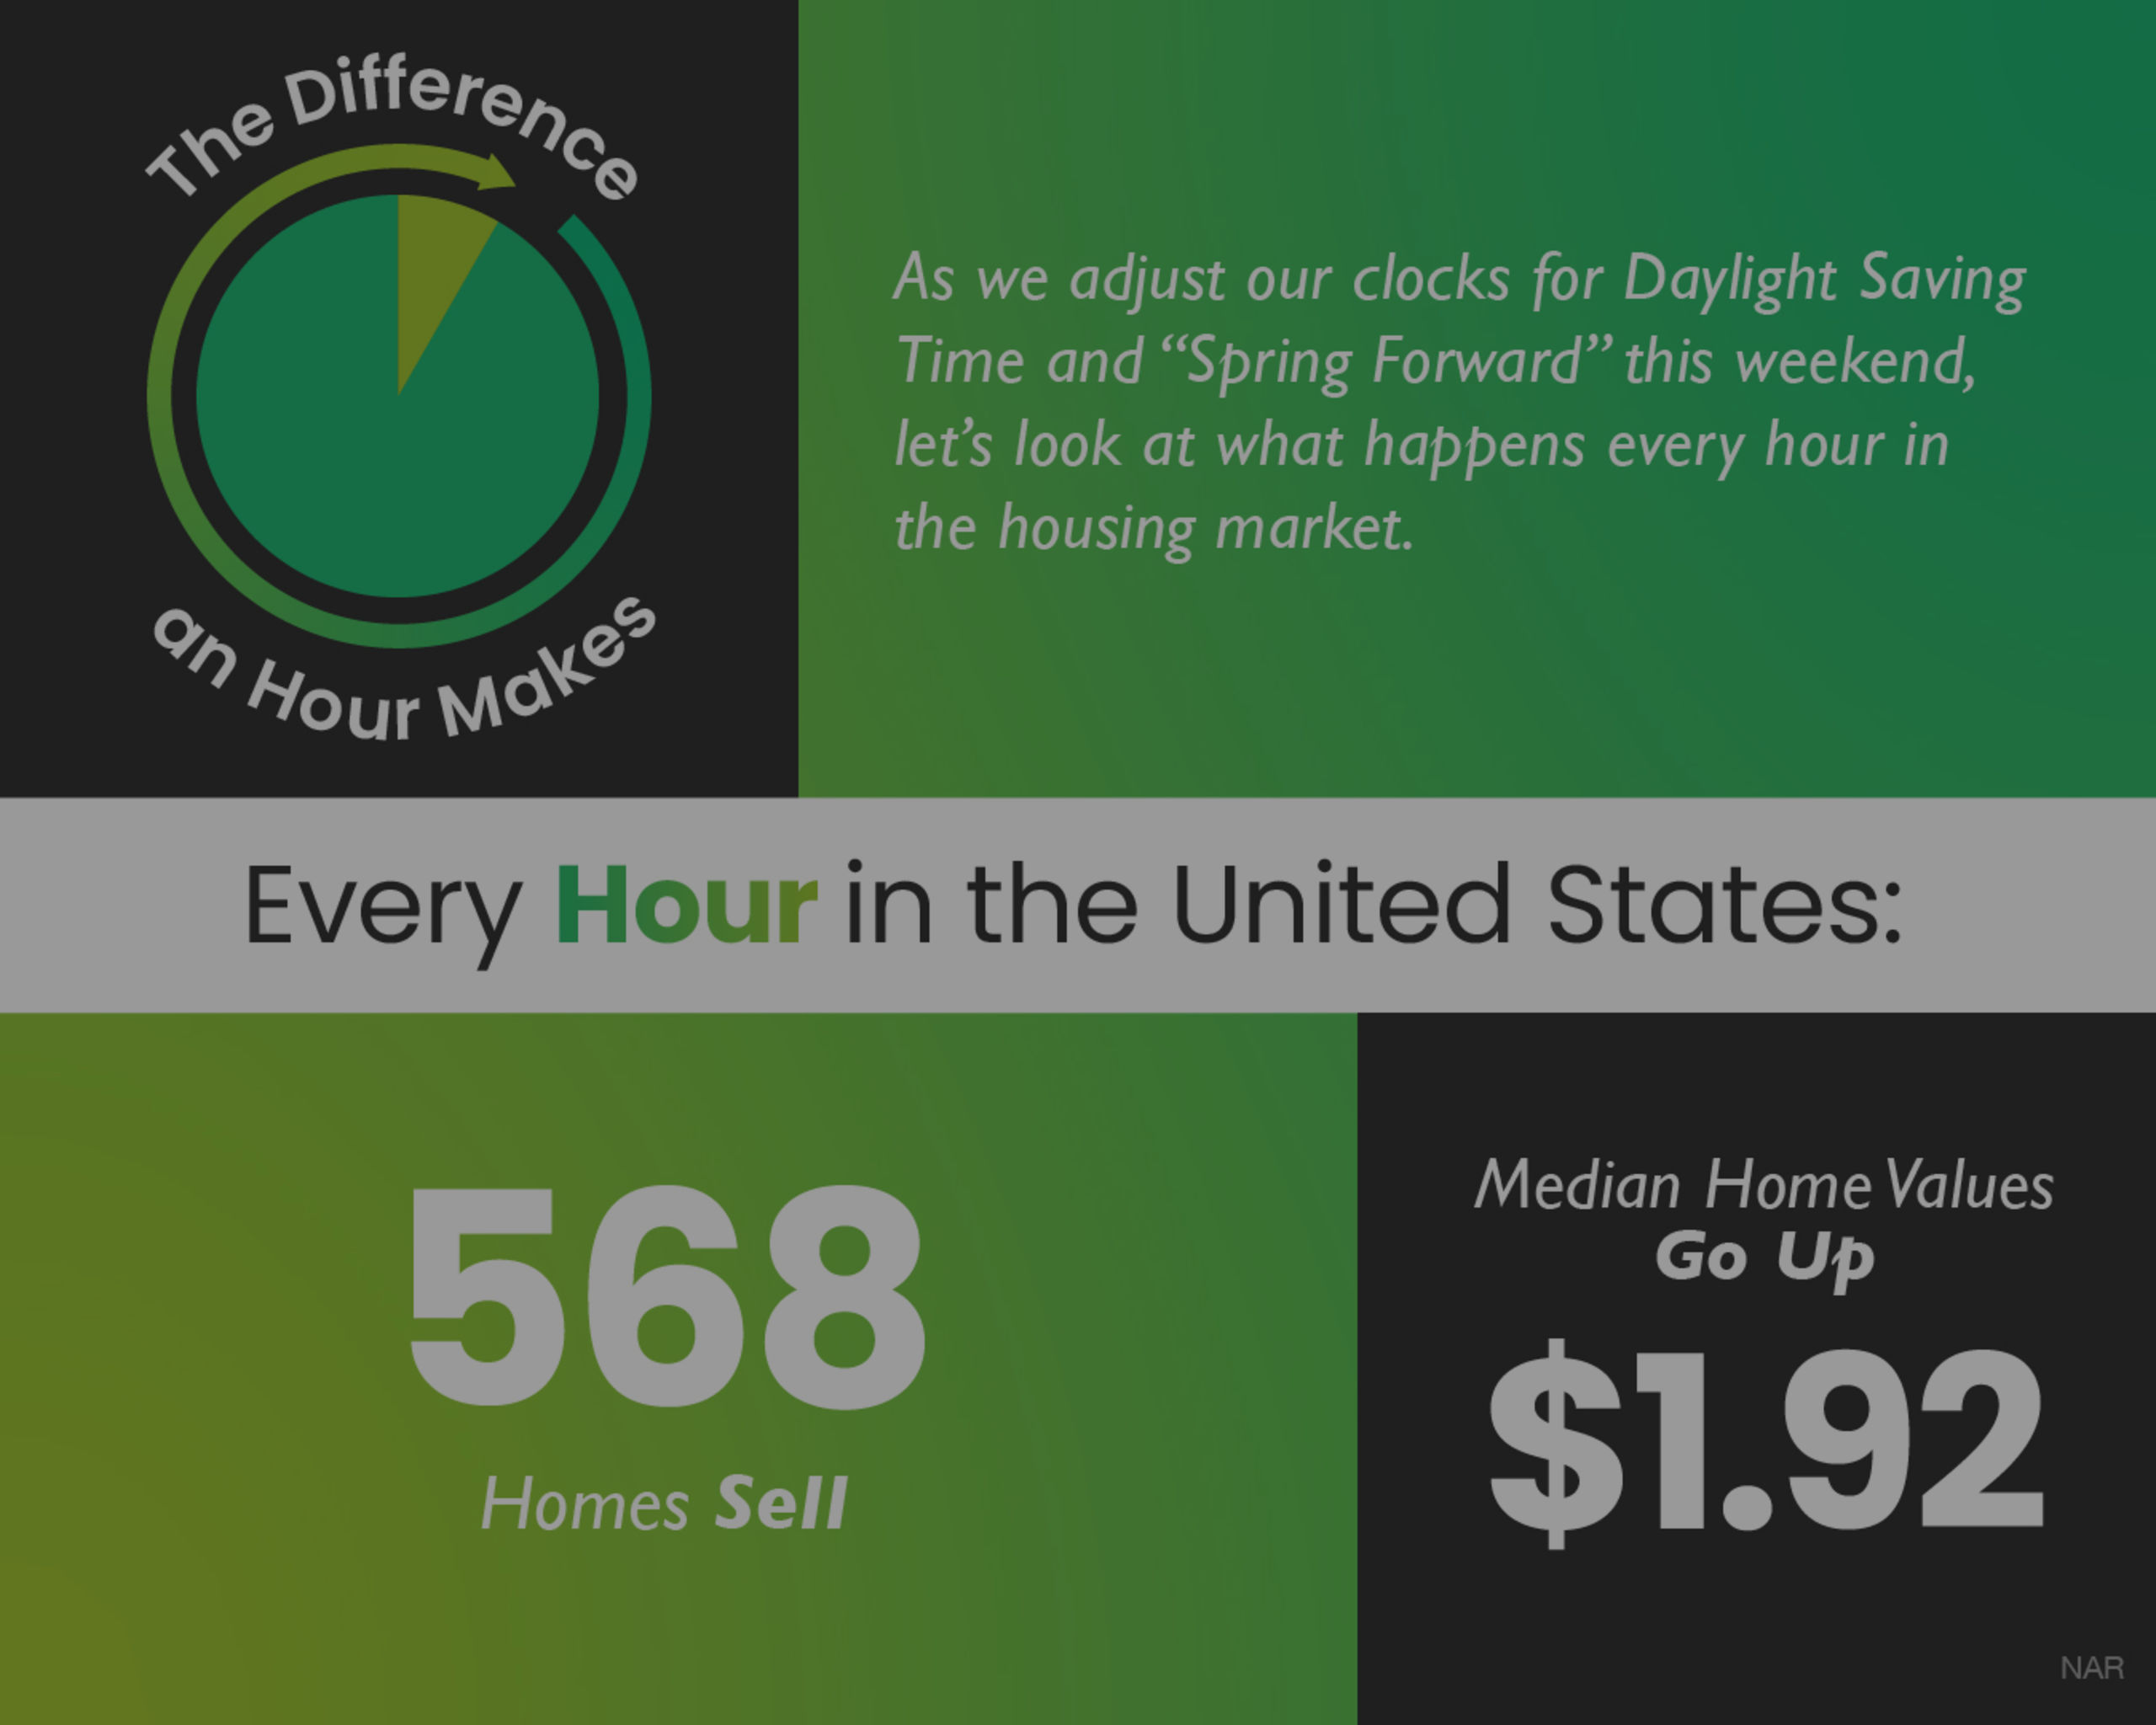 SELL MY HOUSE IN MD / The Difference an Hour Makes [INFOGRAPHIC]